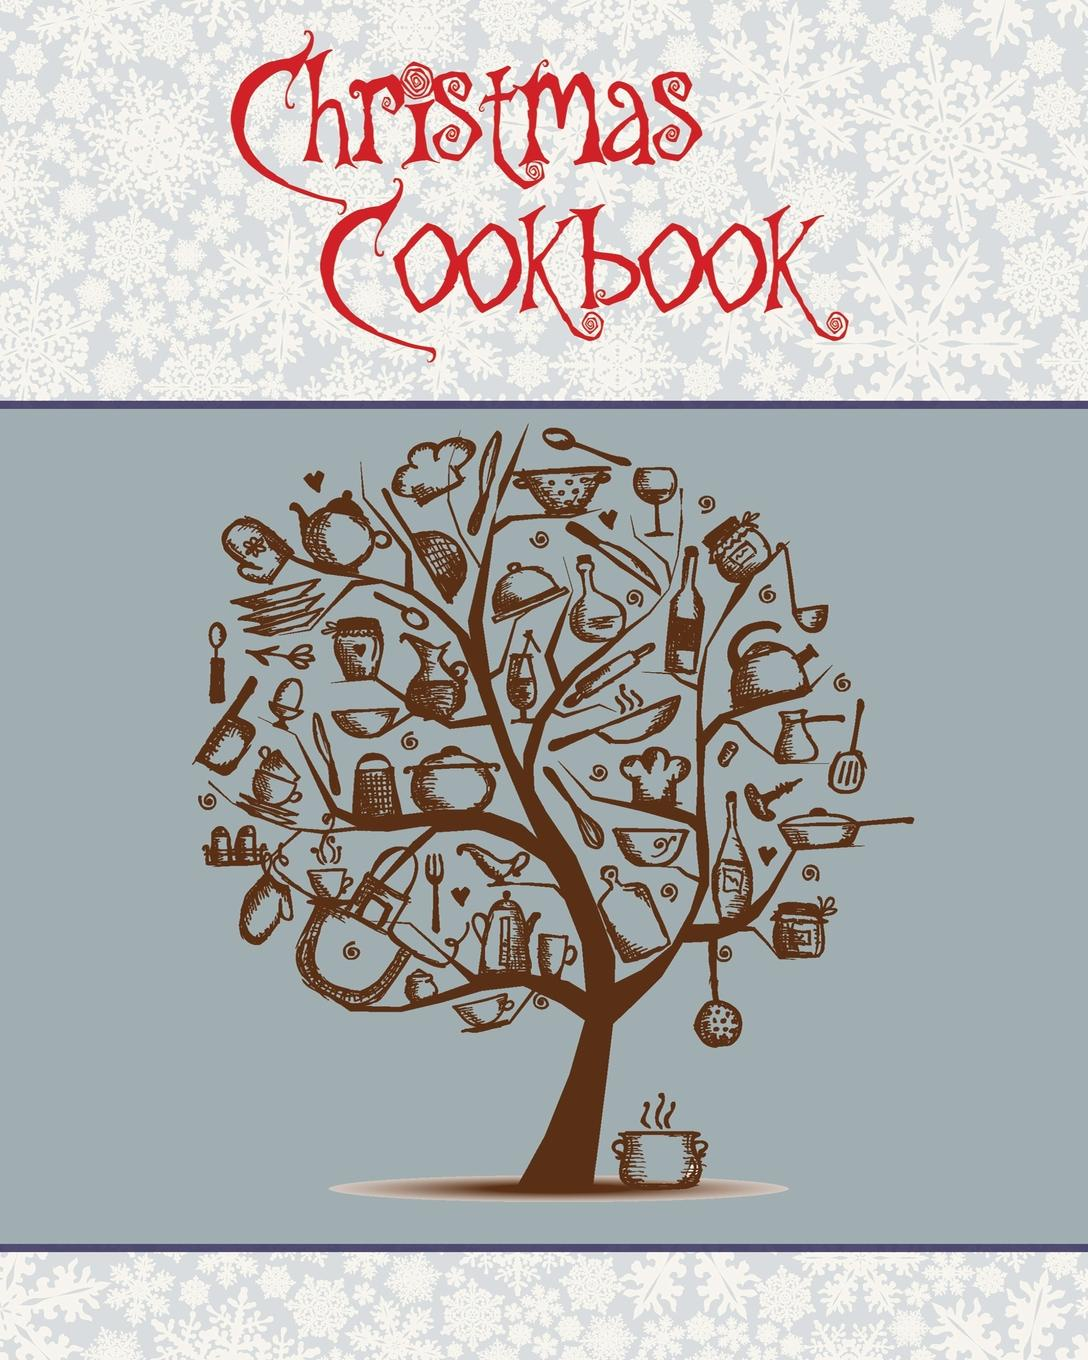 Journal Jungle Publishing Christmas Cookbook. A Great Gift Idea for the Holidays... Make a Family Cookbook to Give as a Present - 100 Recipes, Organizer, Conversion Tables and More... (8 x 10 Inches / White) kevin dundon great family food